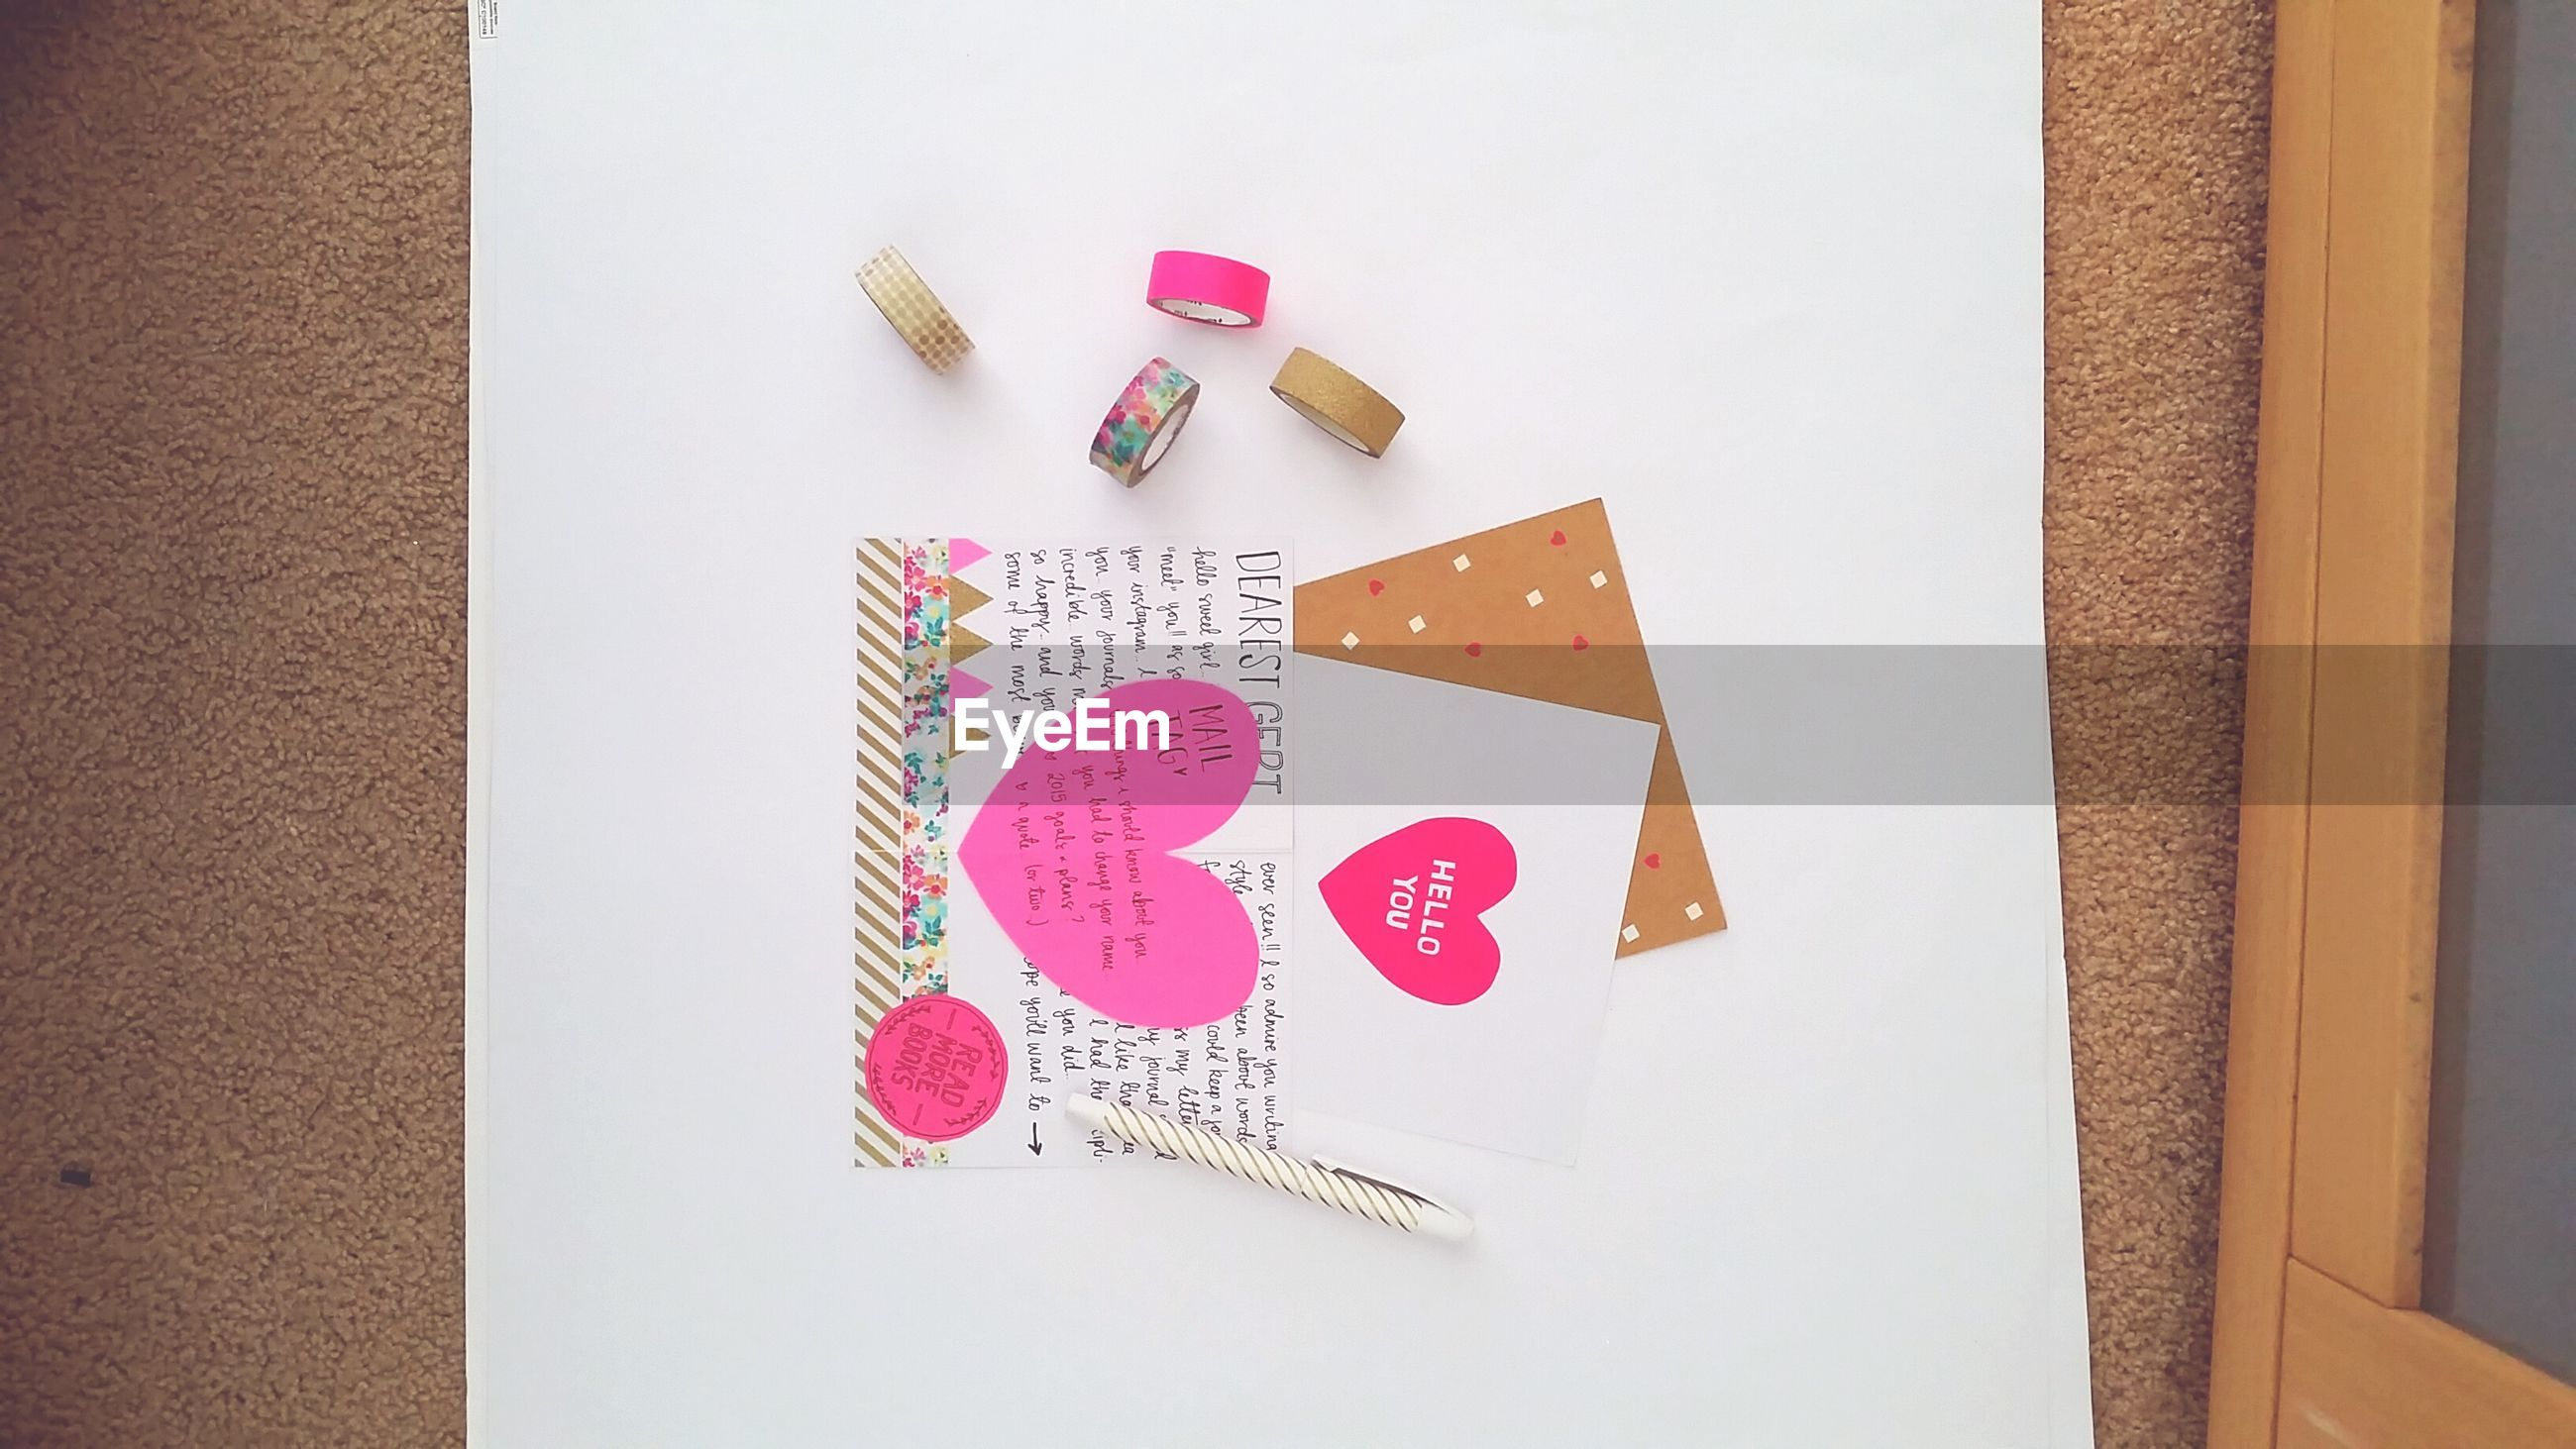 indoors, text, western script, communication, creativity, still life, art, table, paper, art and craft, wall - building feature, heart shape, love, close-up, human representation, red, high angle view, no people, decoration, animal representation